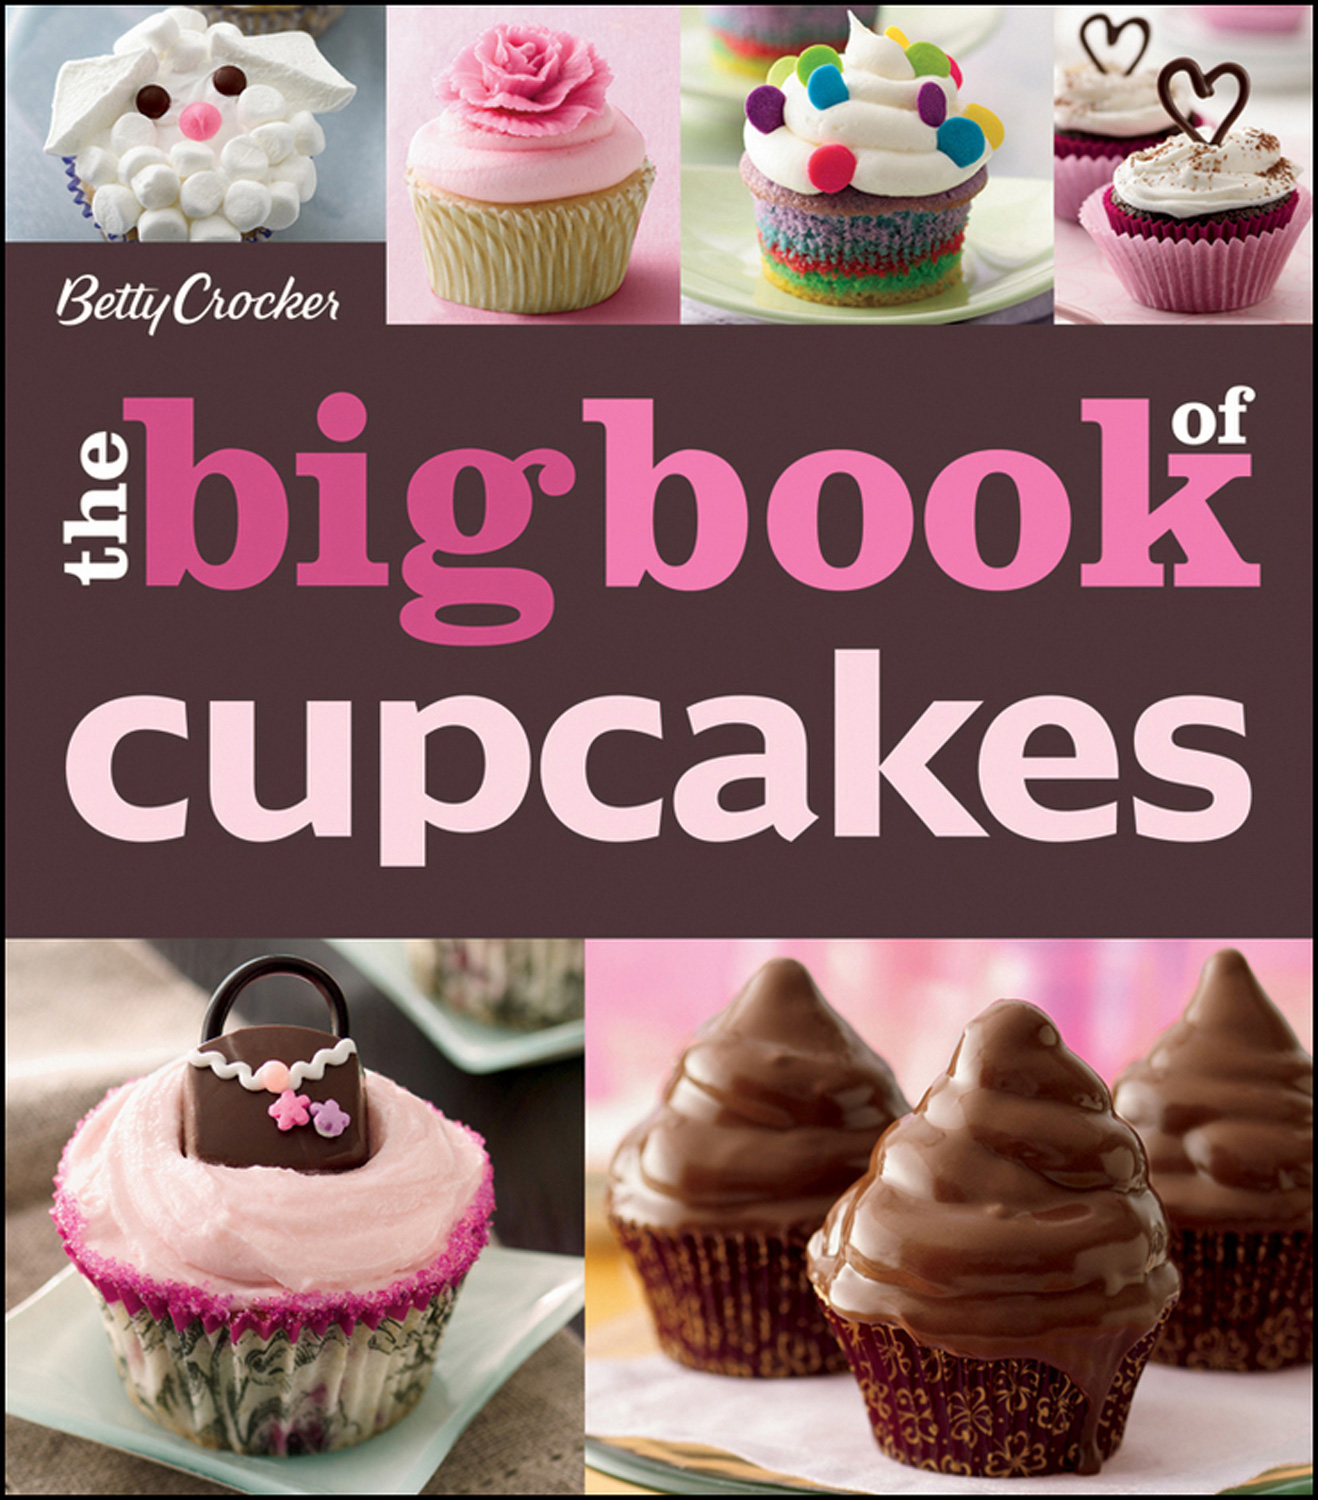 The Betty Crocker The Big Book of Cupcakes-9780470906729